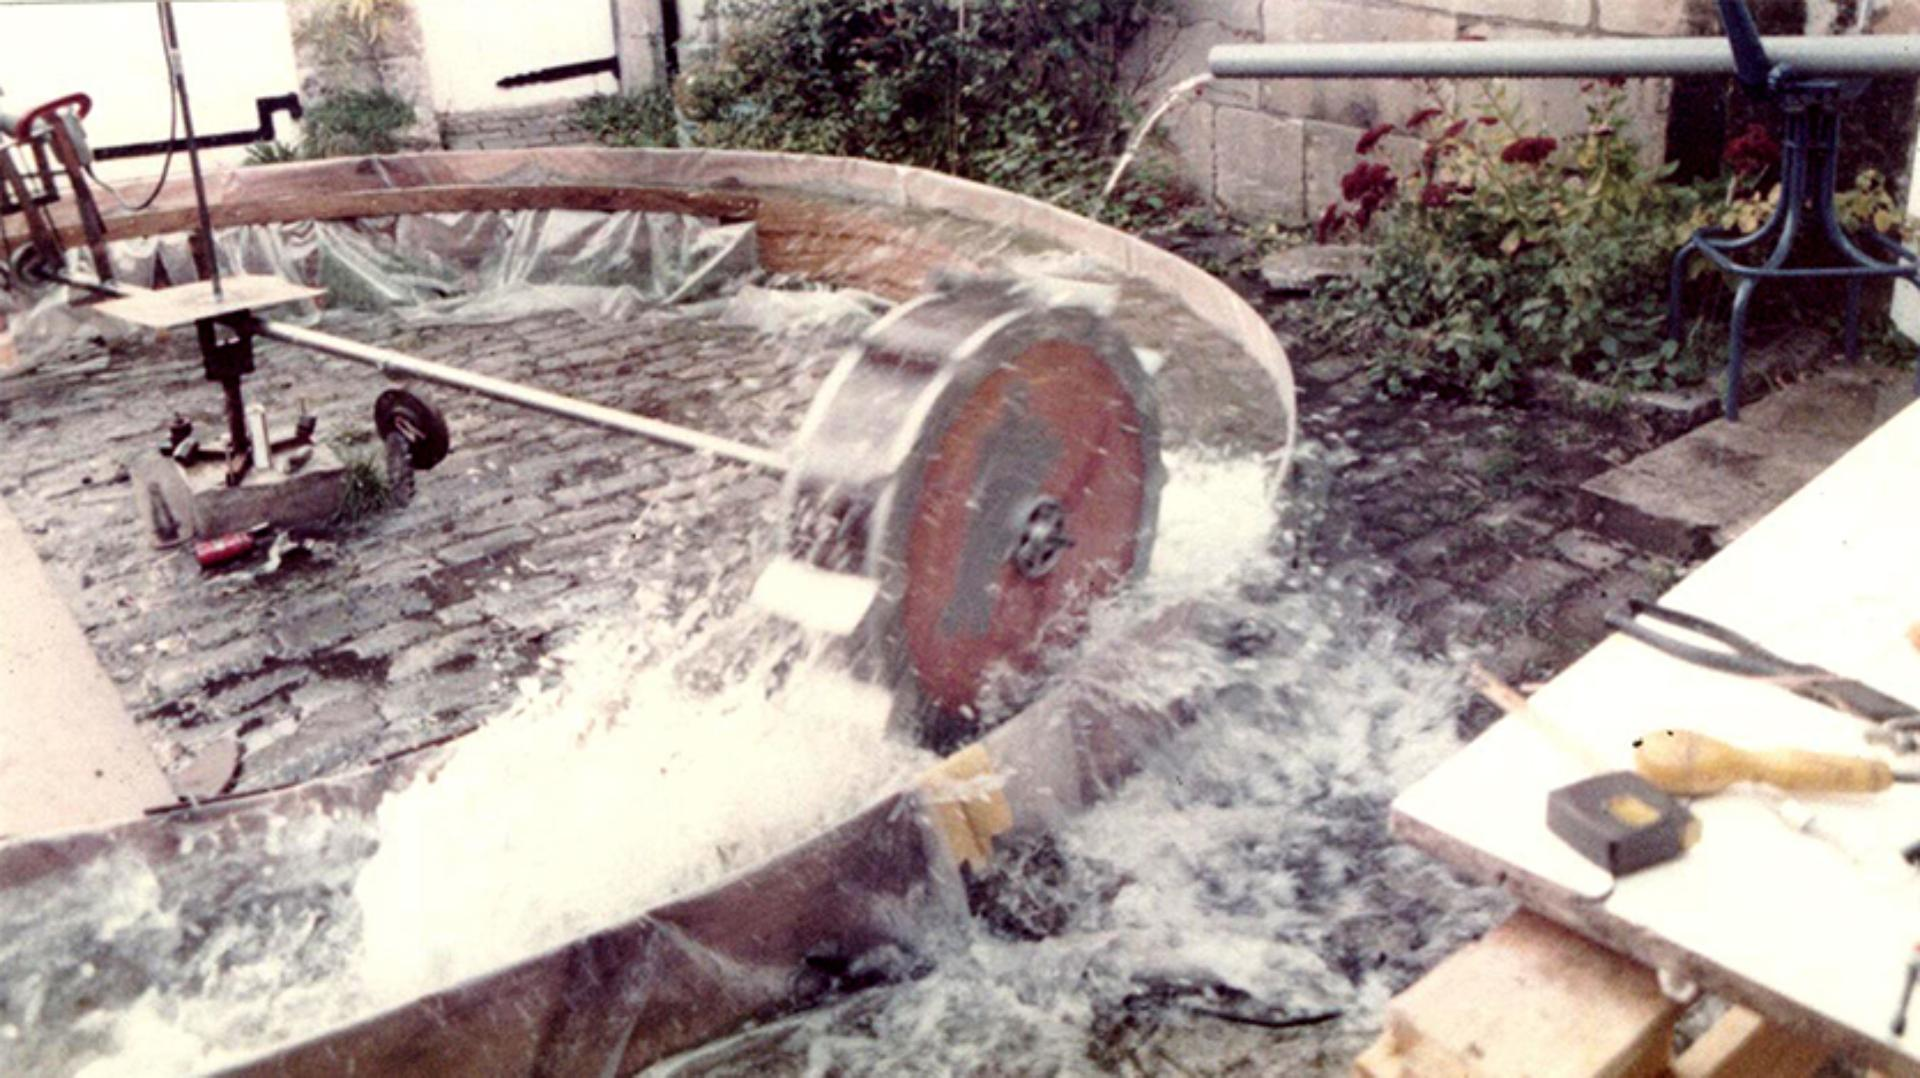 Wheelboat mechanics being tested in a water tank